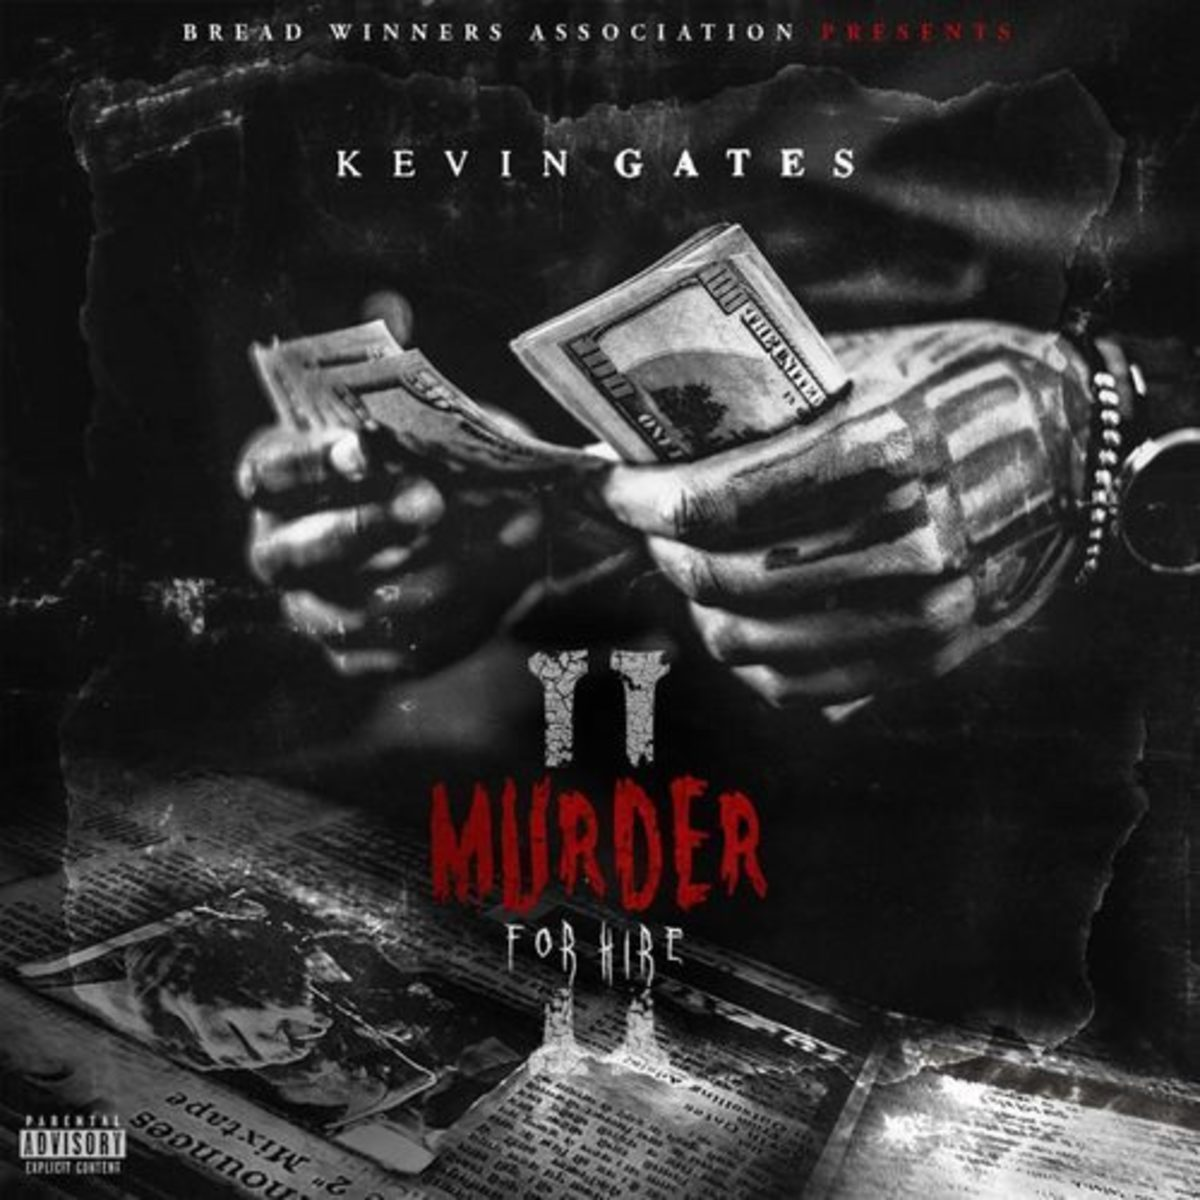 kevin-gates-murder-for-hire-2.jpg